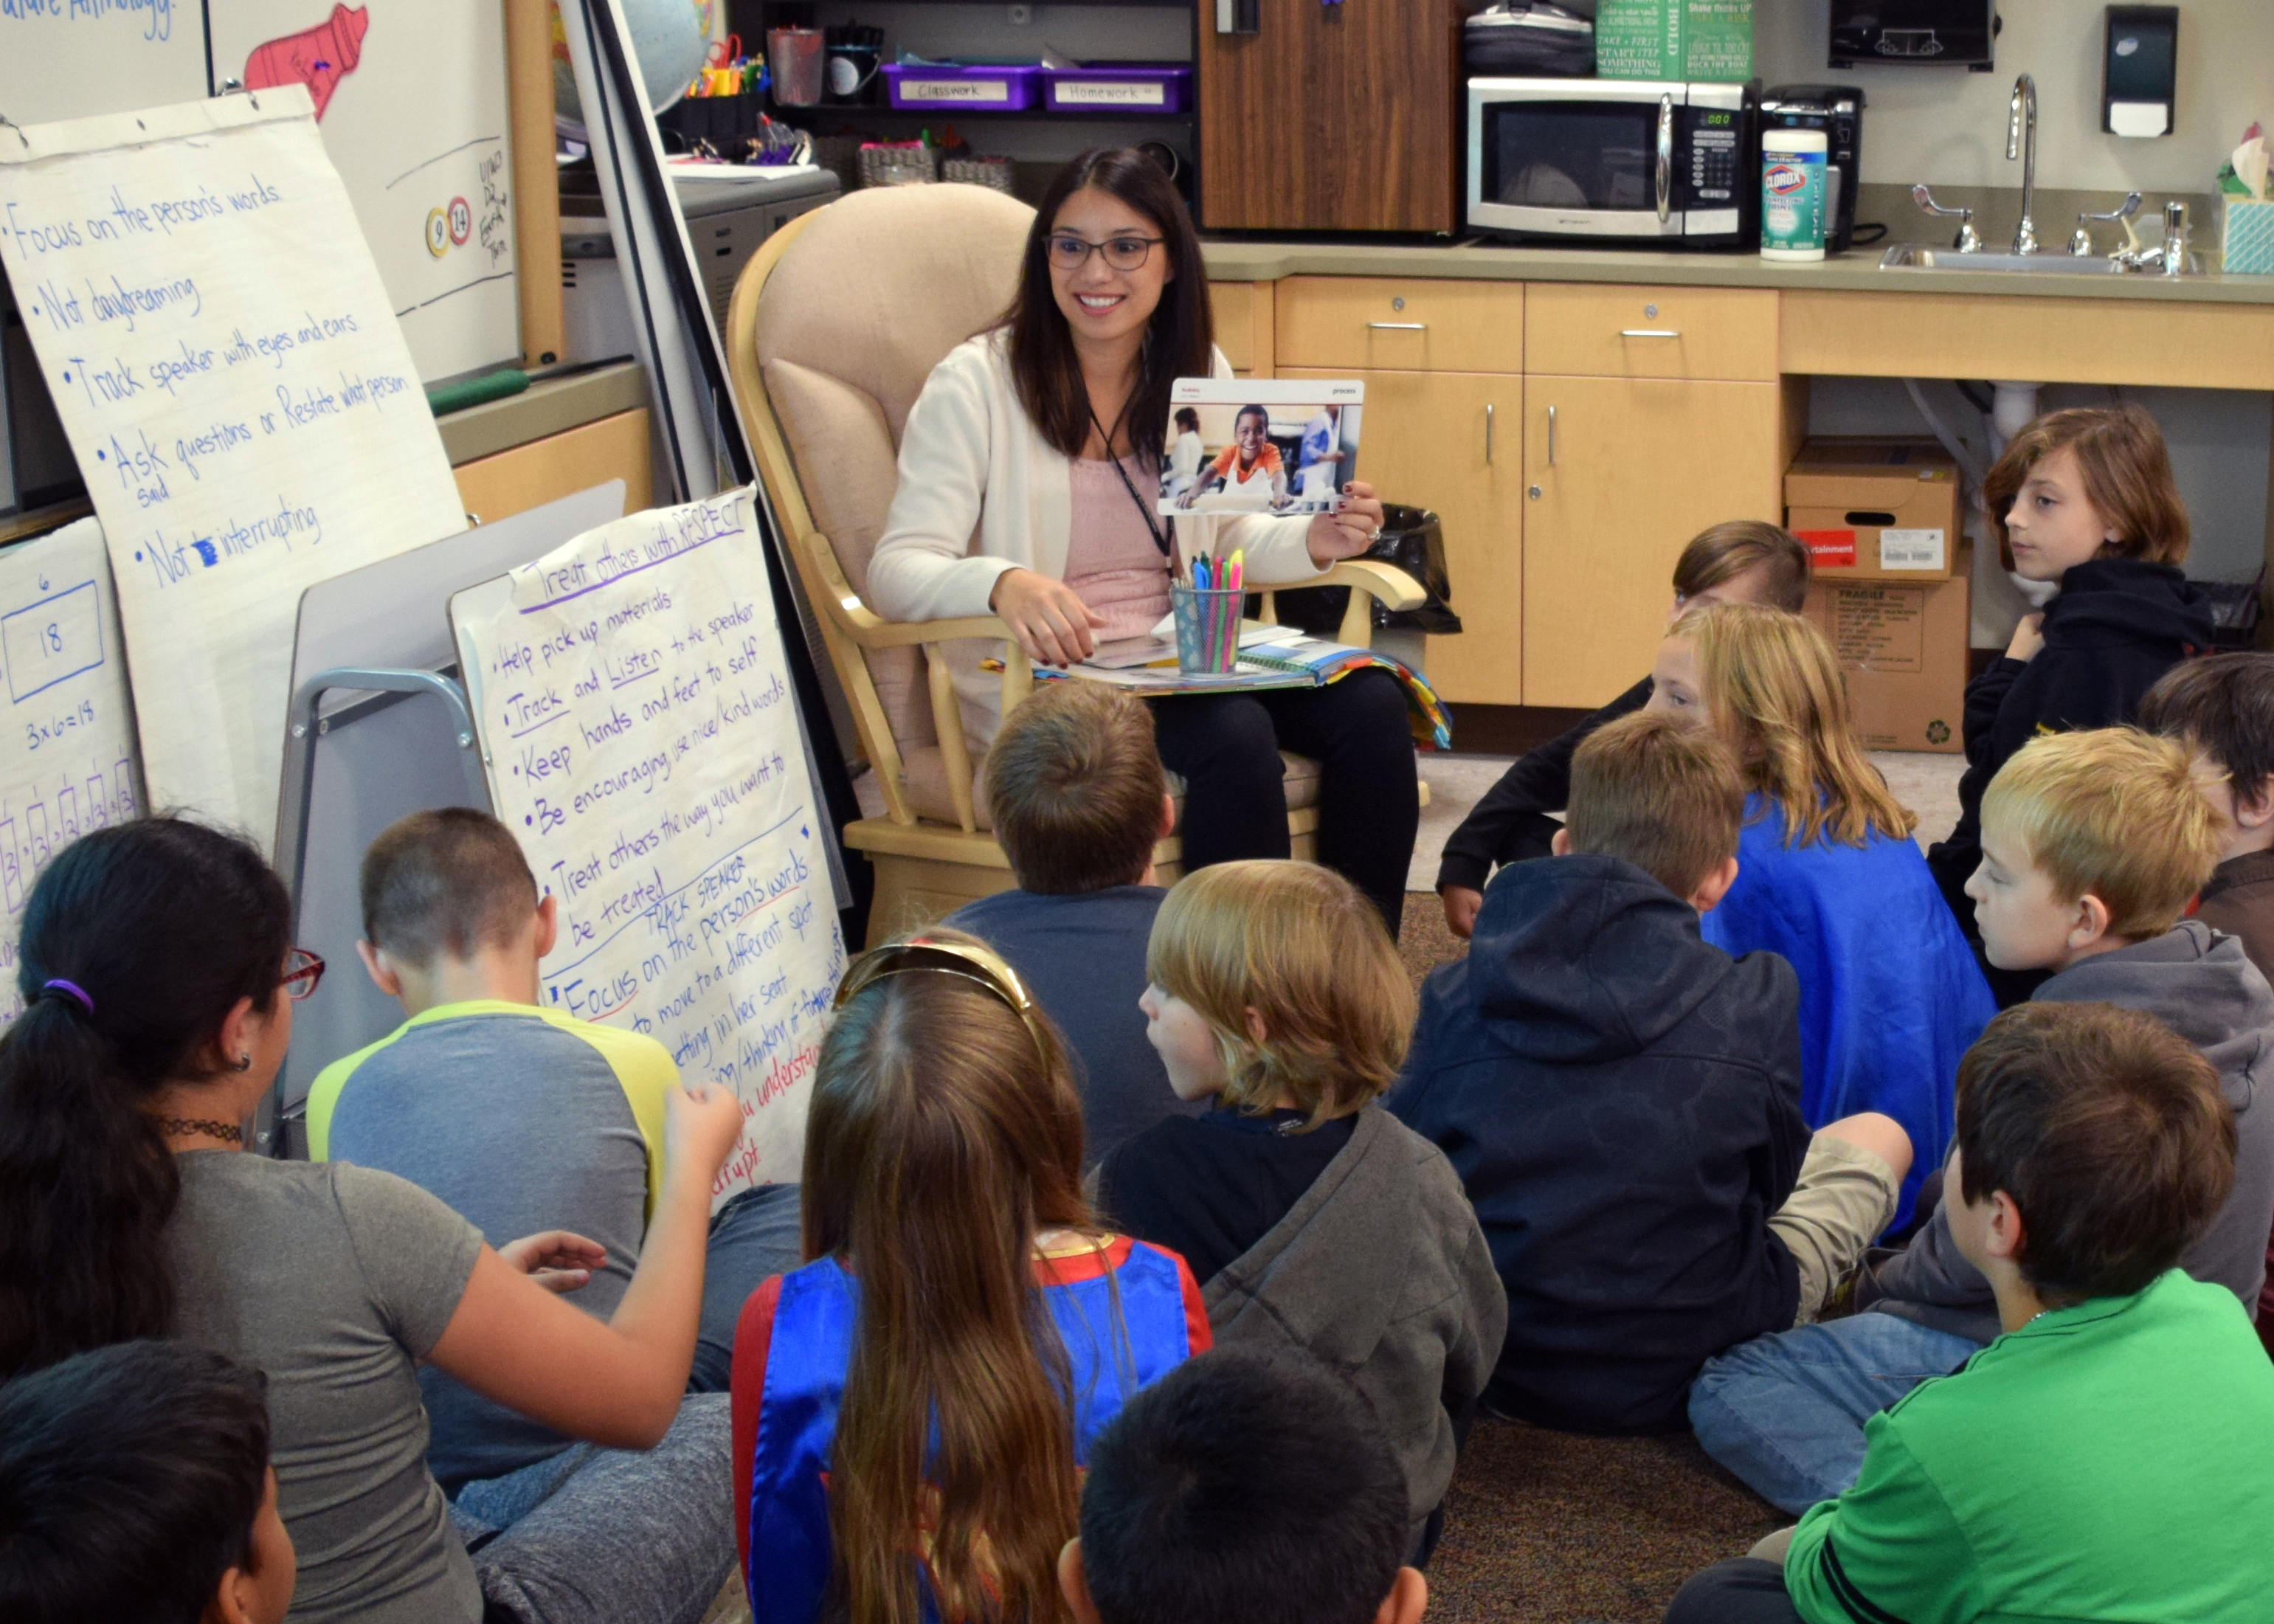 Teacher sitting in a small group circle with students shares lesson information